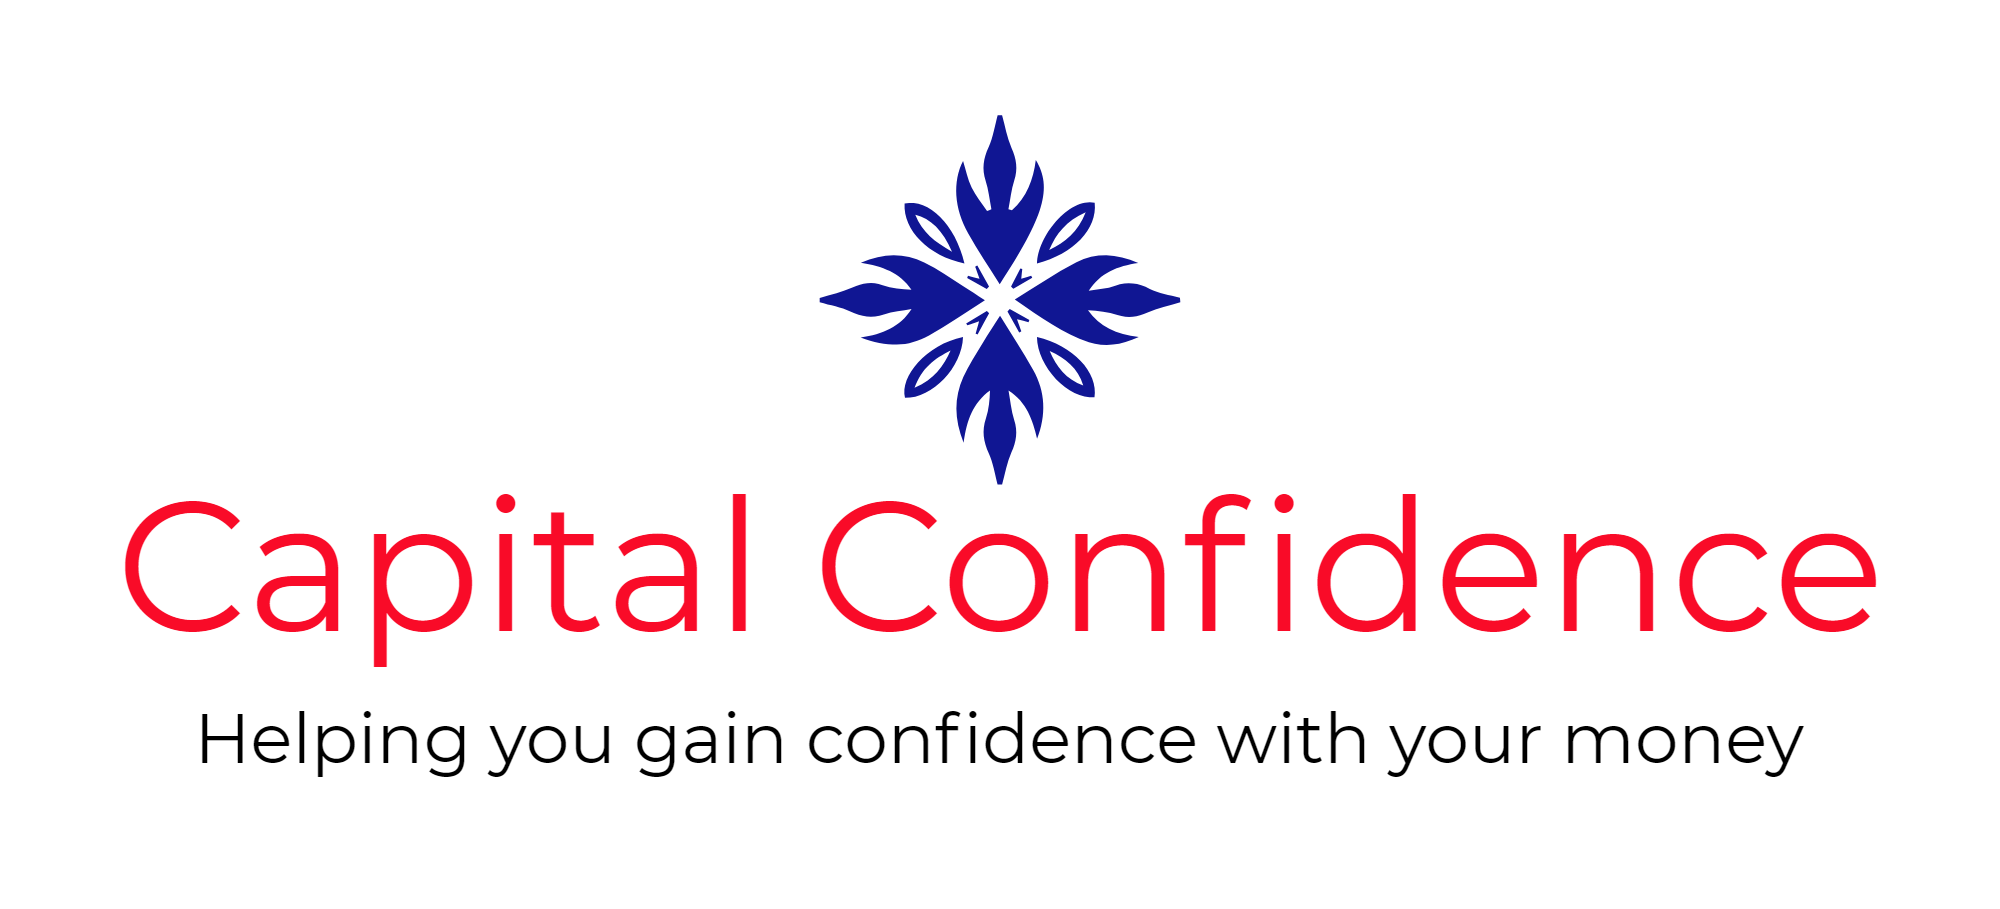 Capital Confidence-logo.png